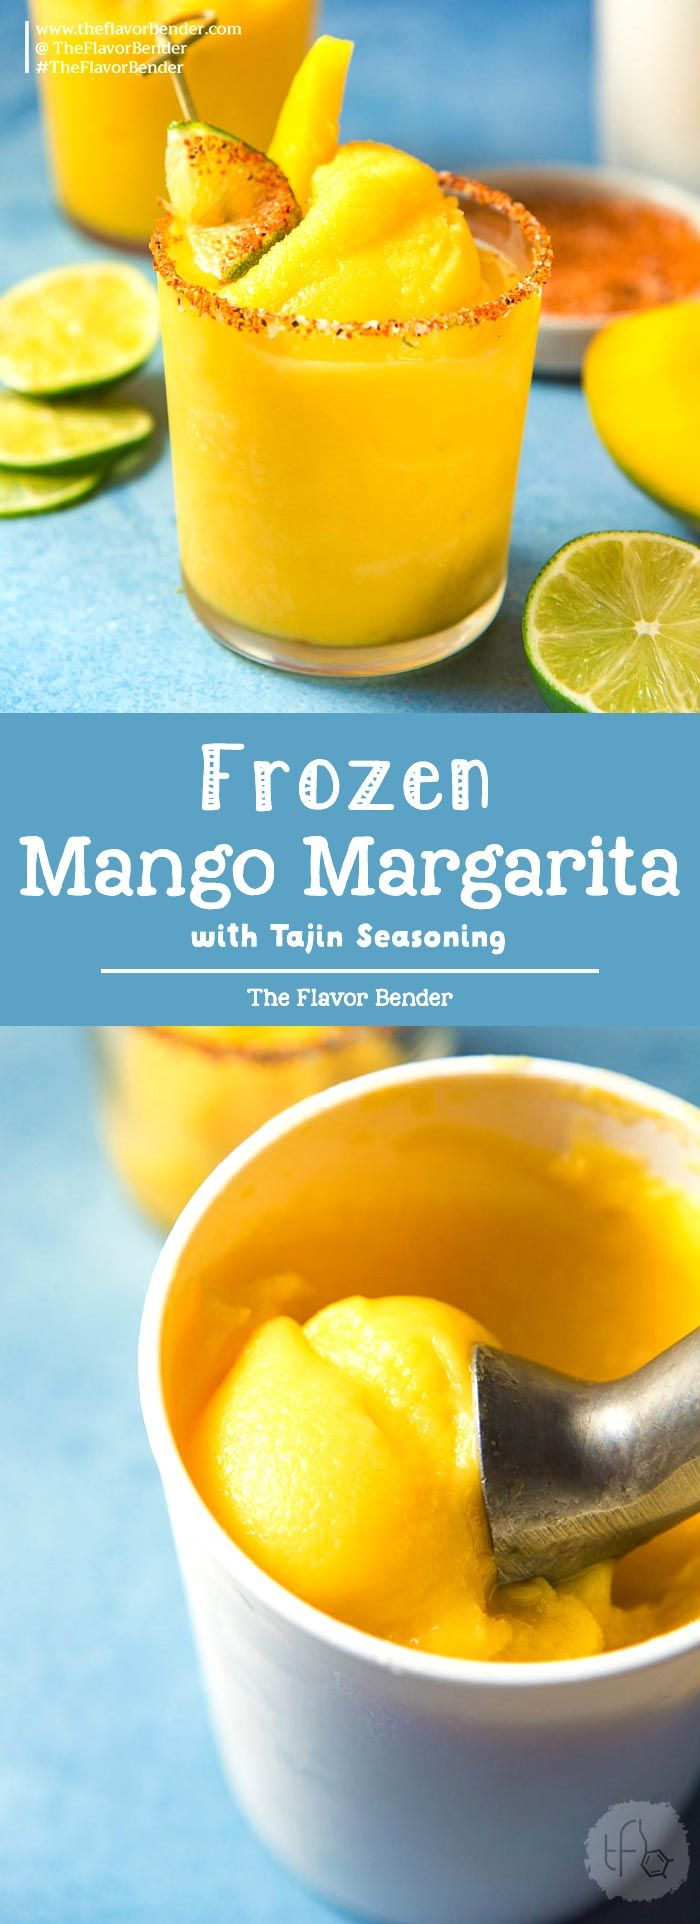 Frozen Mango Margarita - a creamy, sorbet like, fruity and refreshing frozen margarita with a spicy lime chili salt ring (Tajin Seasoning) to kick it up another notch! #MangoMargarita #FrozenMargarita #SummerCocktails via @theflavorbender #frozenmargaritarecipes